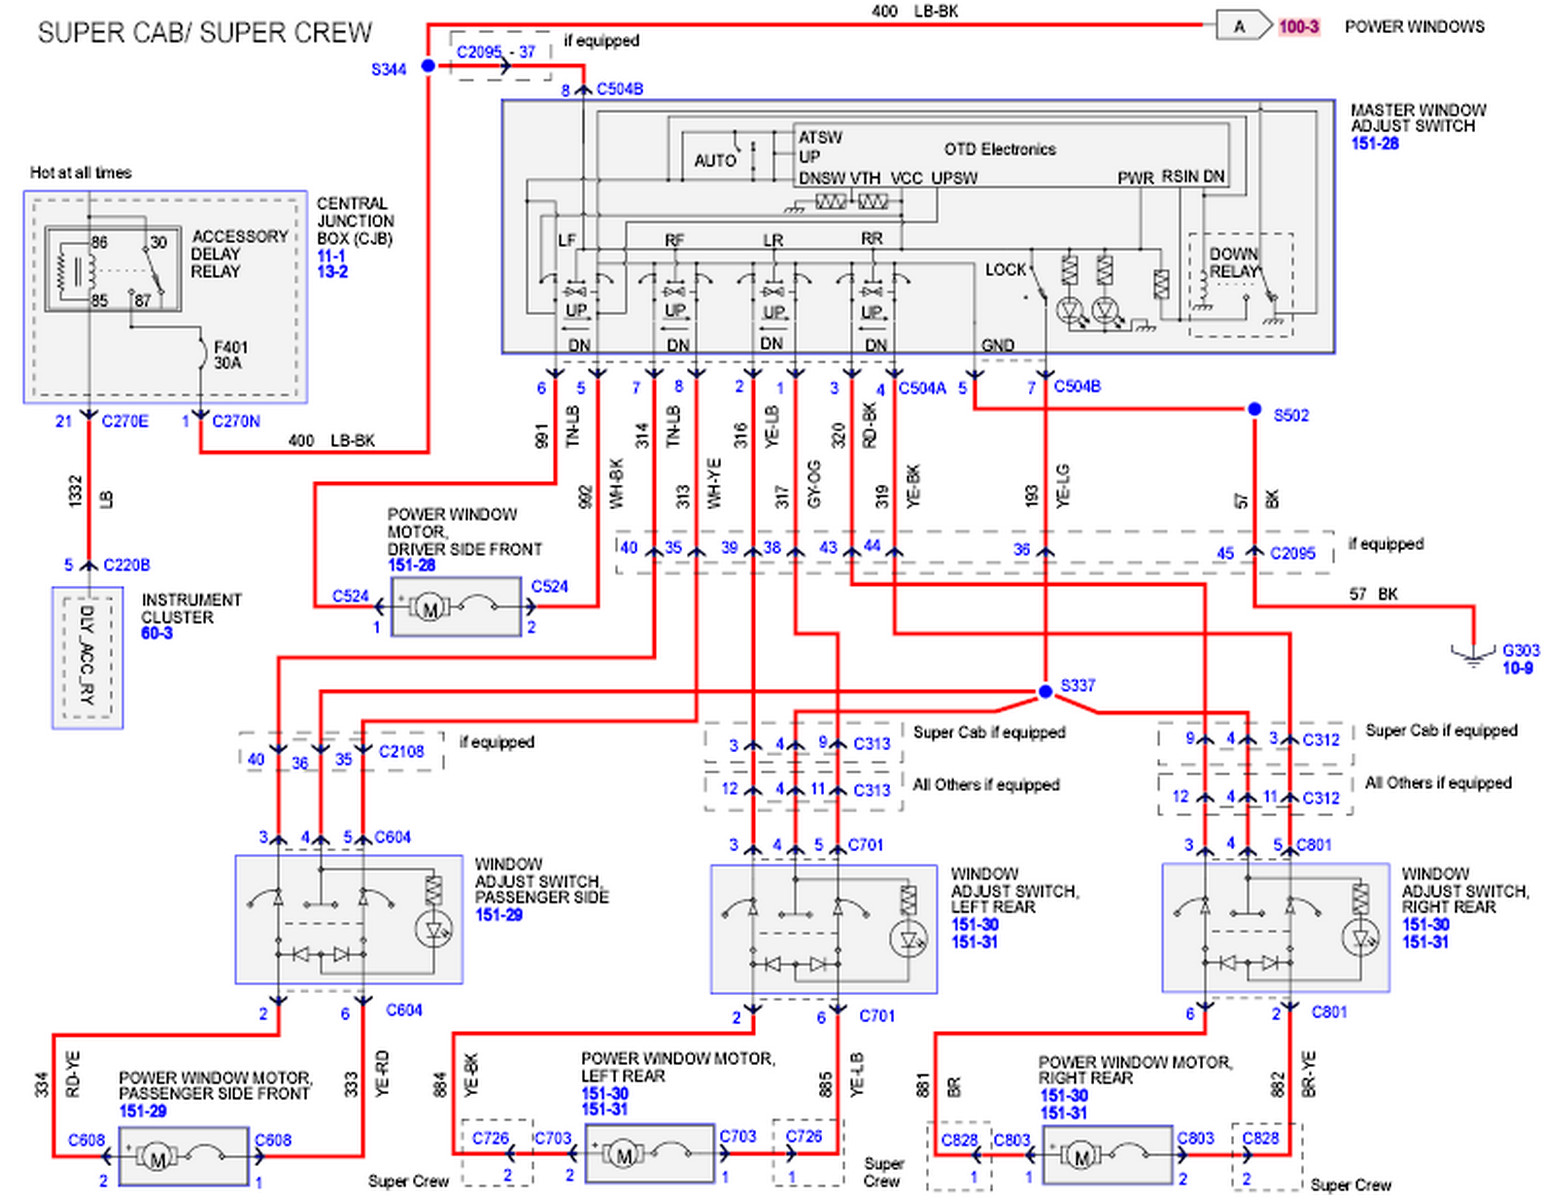 medium resolution of ford power window diagram best wiring diagram 99 ford f 150 power window wiring diagram